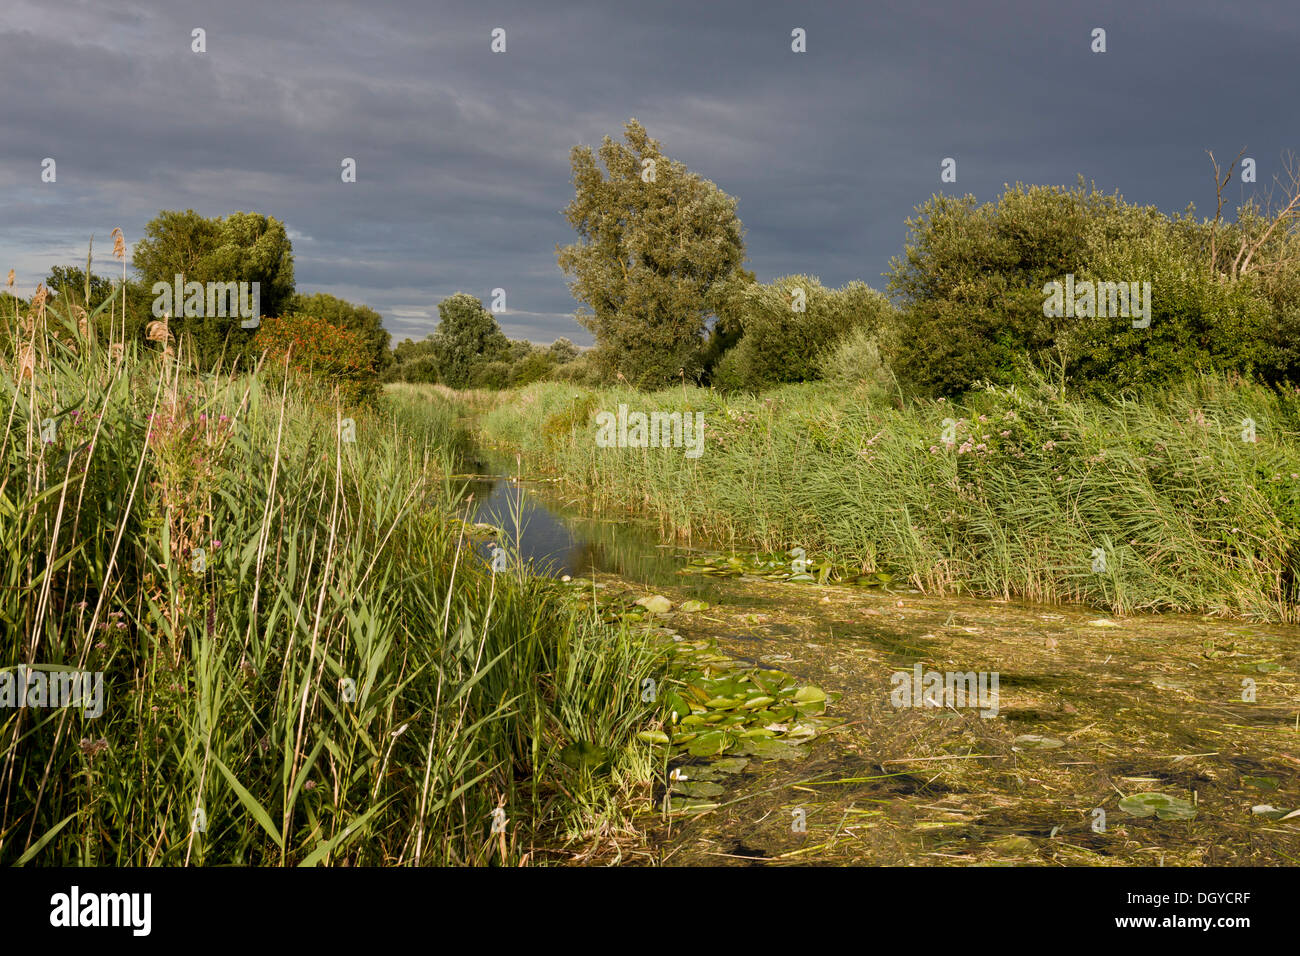 Ditch and reedbeds at Wicken Fen, Cambs. - Stock Image